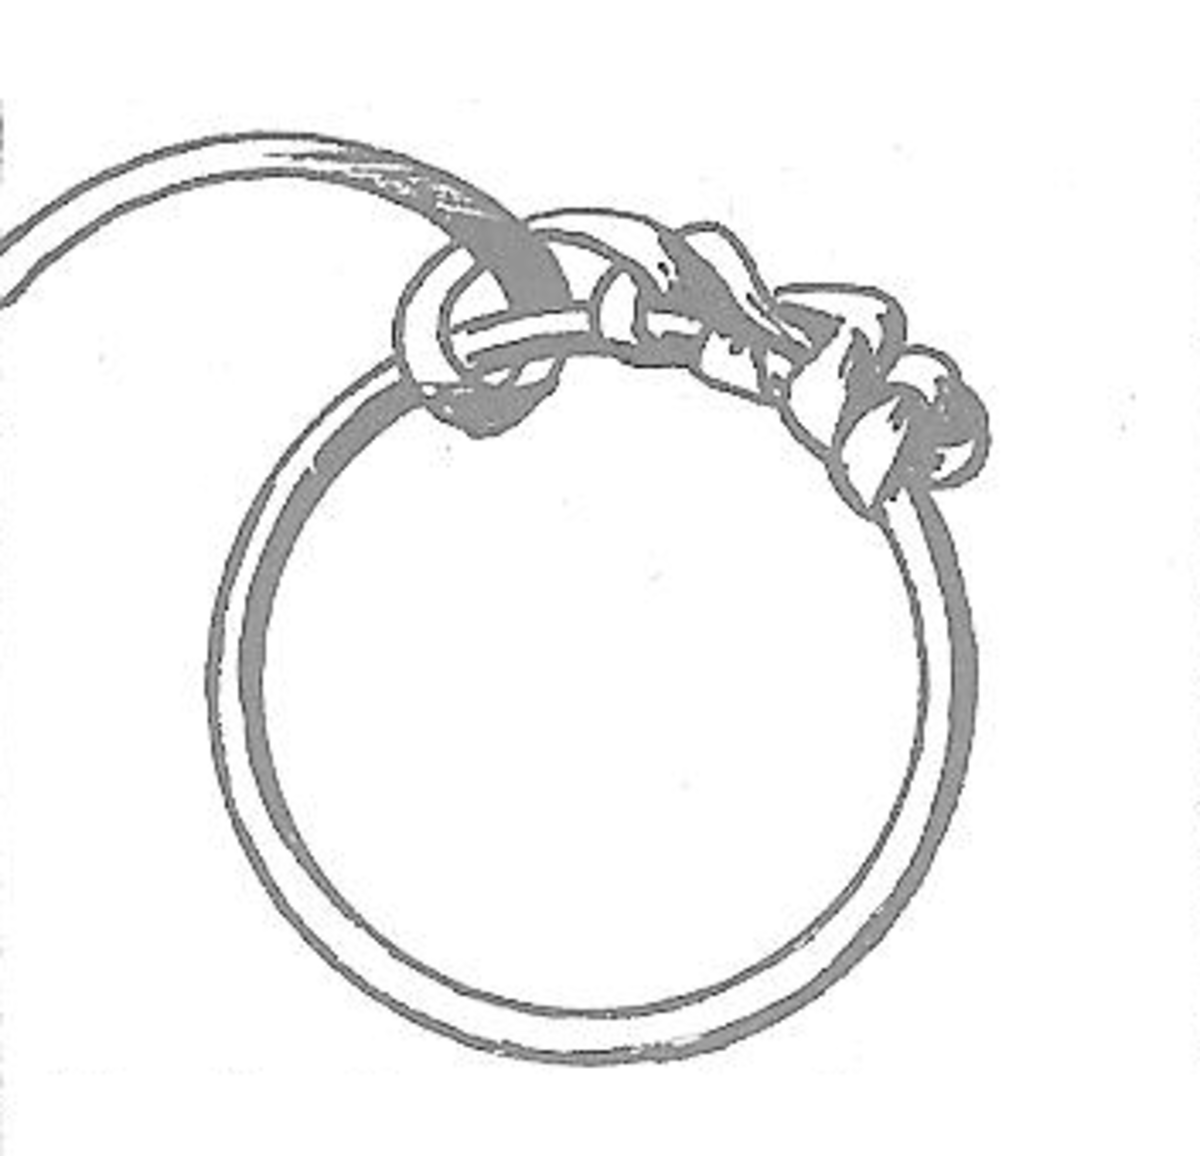 Figure 2: Covering the Ring